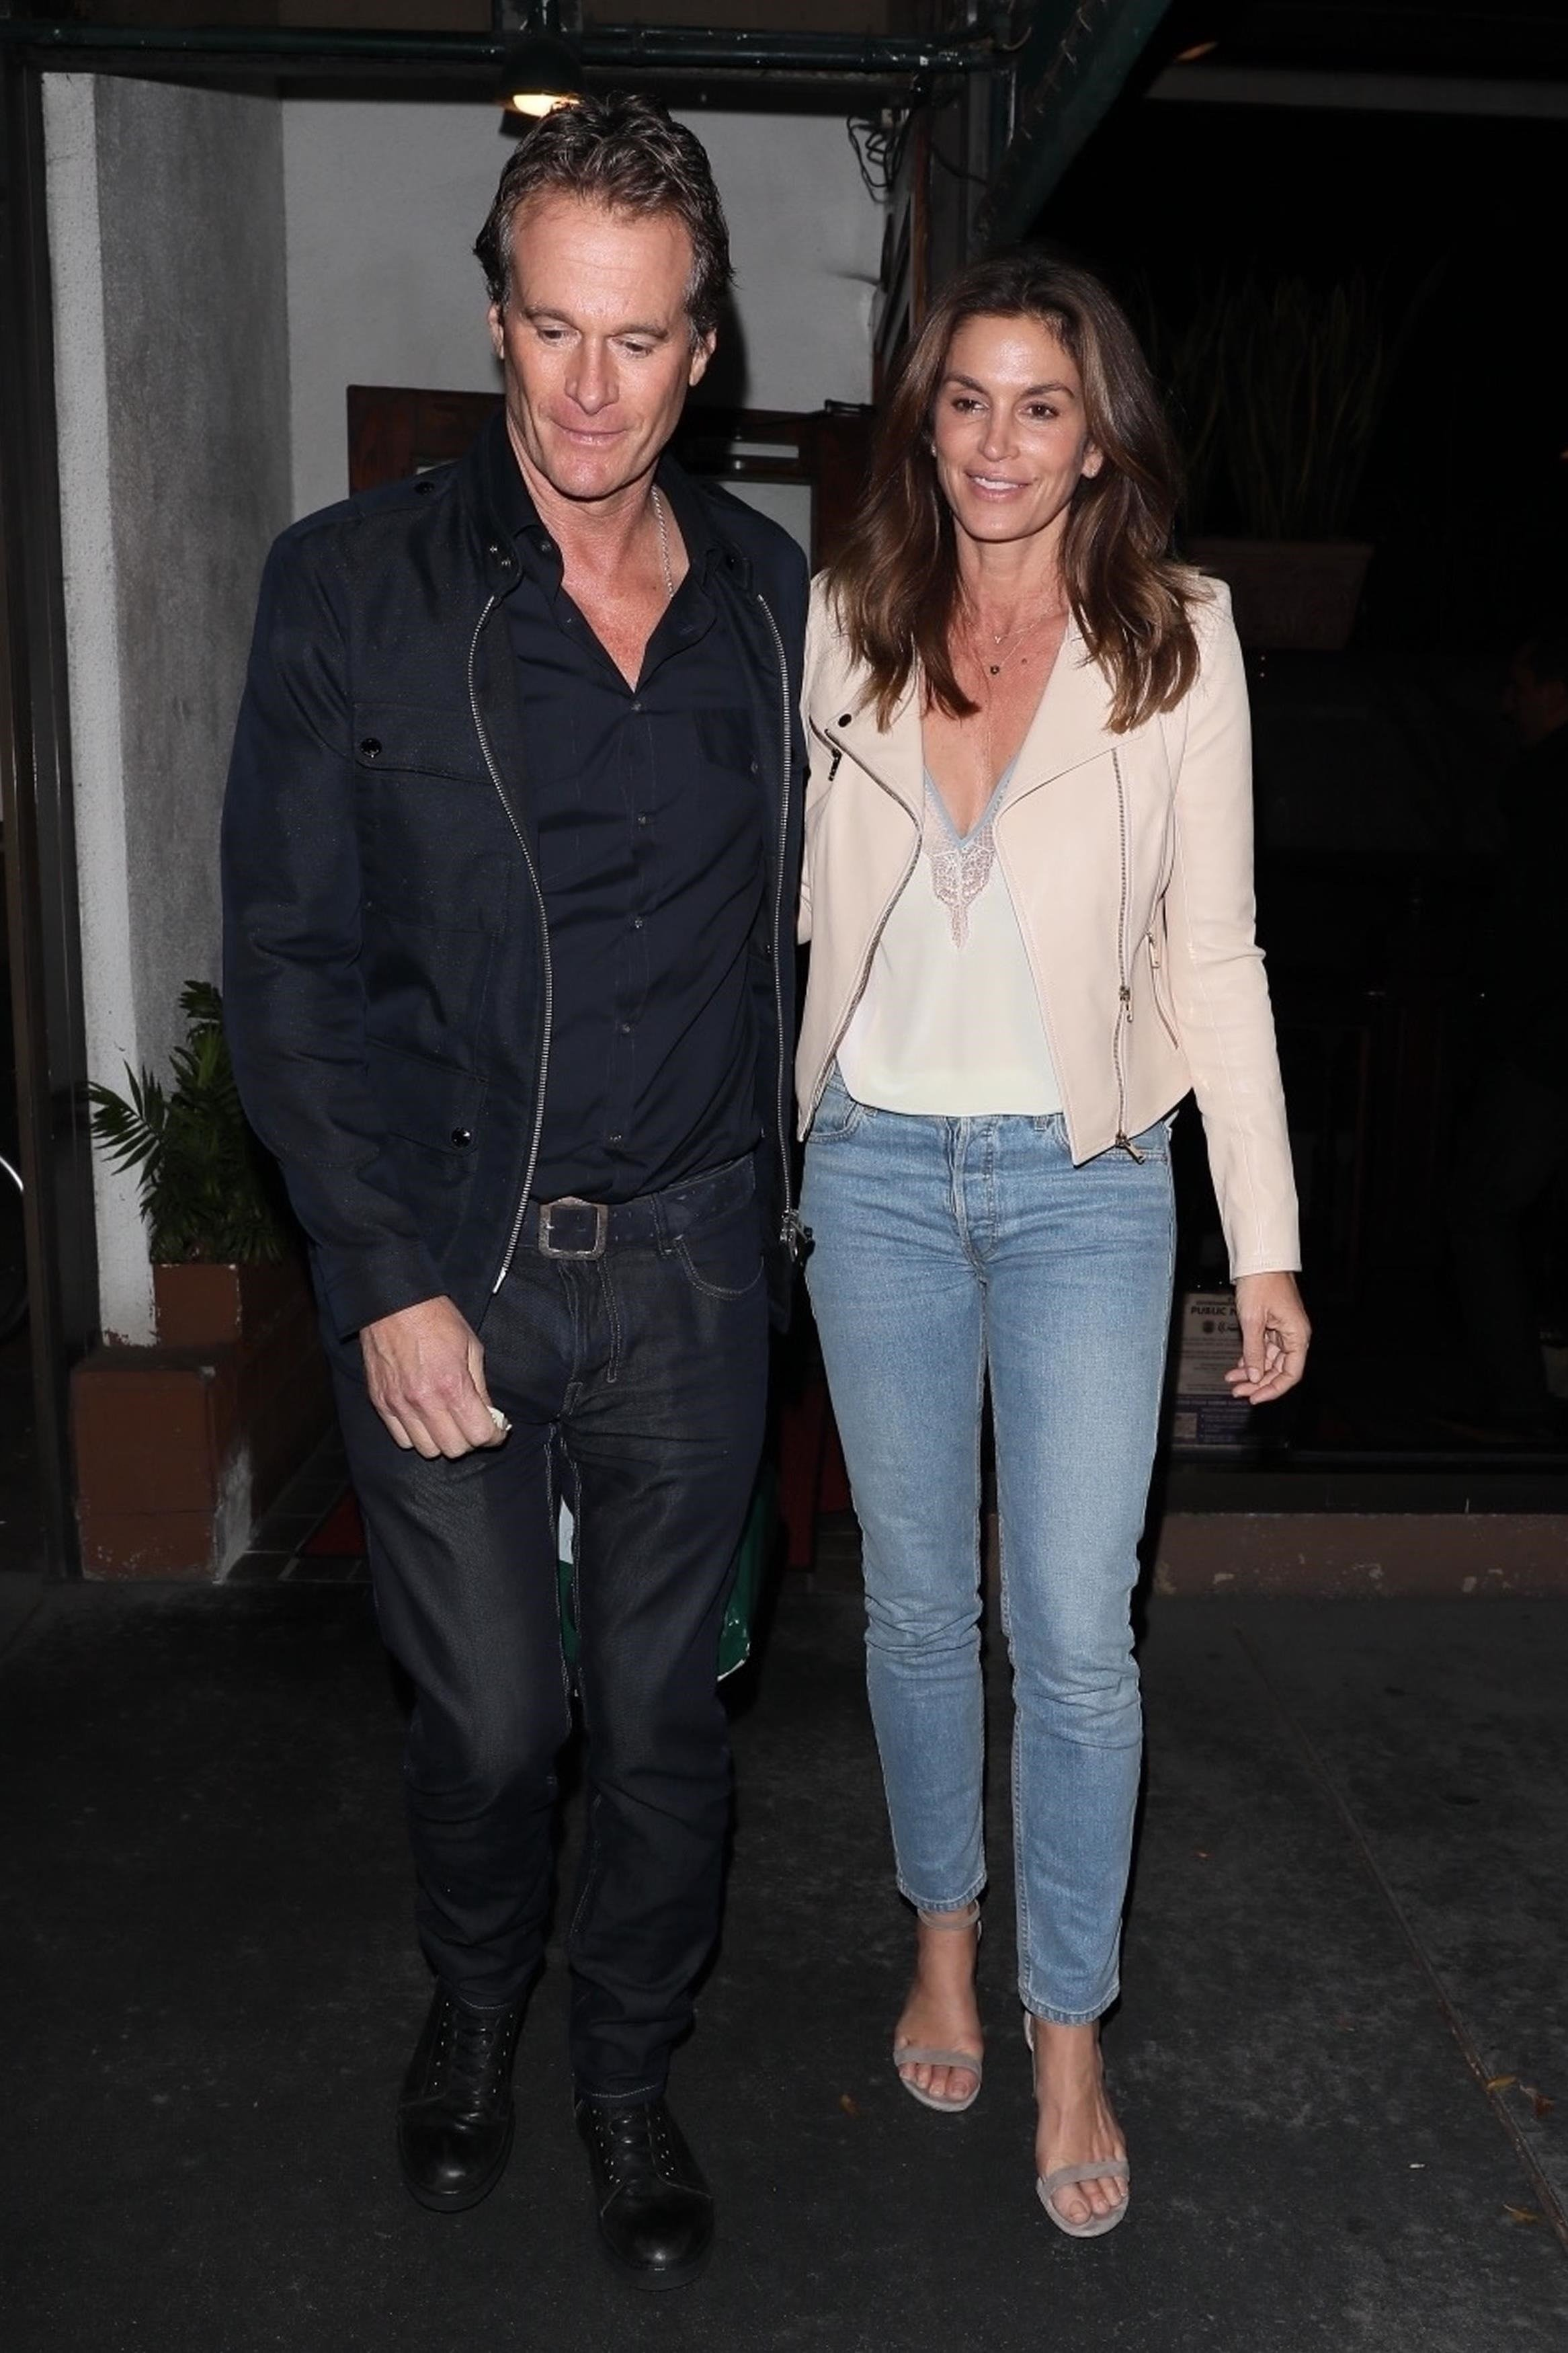 West Hollywood, CA  - Model Cindy Crawford and her husband Rande Gerber were spotted enjoying a romantic dinner date at a restaurant in West Hollywood.  Pictured: Cindy Crawford, Rande Gerber  BACKGRID USA 7 NOVEMBER 2017, Image: 354962844, License: Rights-managed, Restrictions: , Model Release: no, Credit line: Profimedia, AKM-GSI